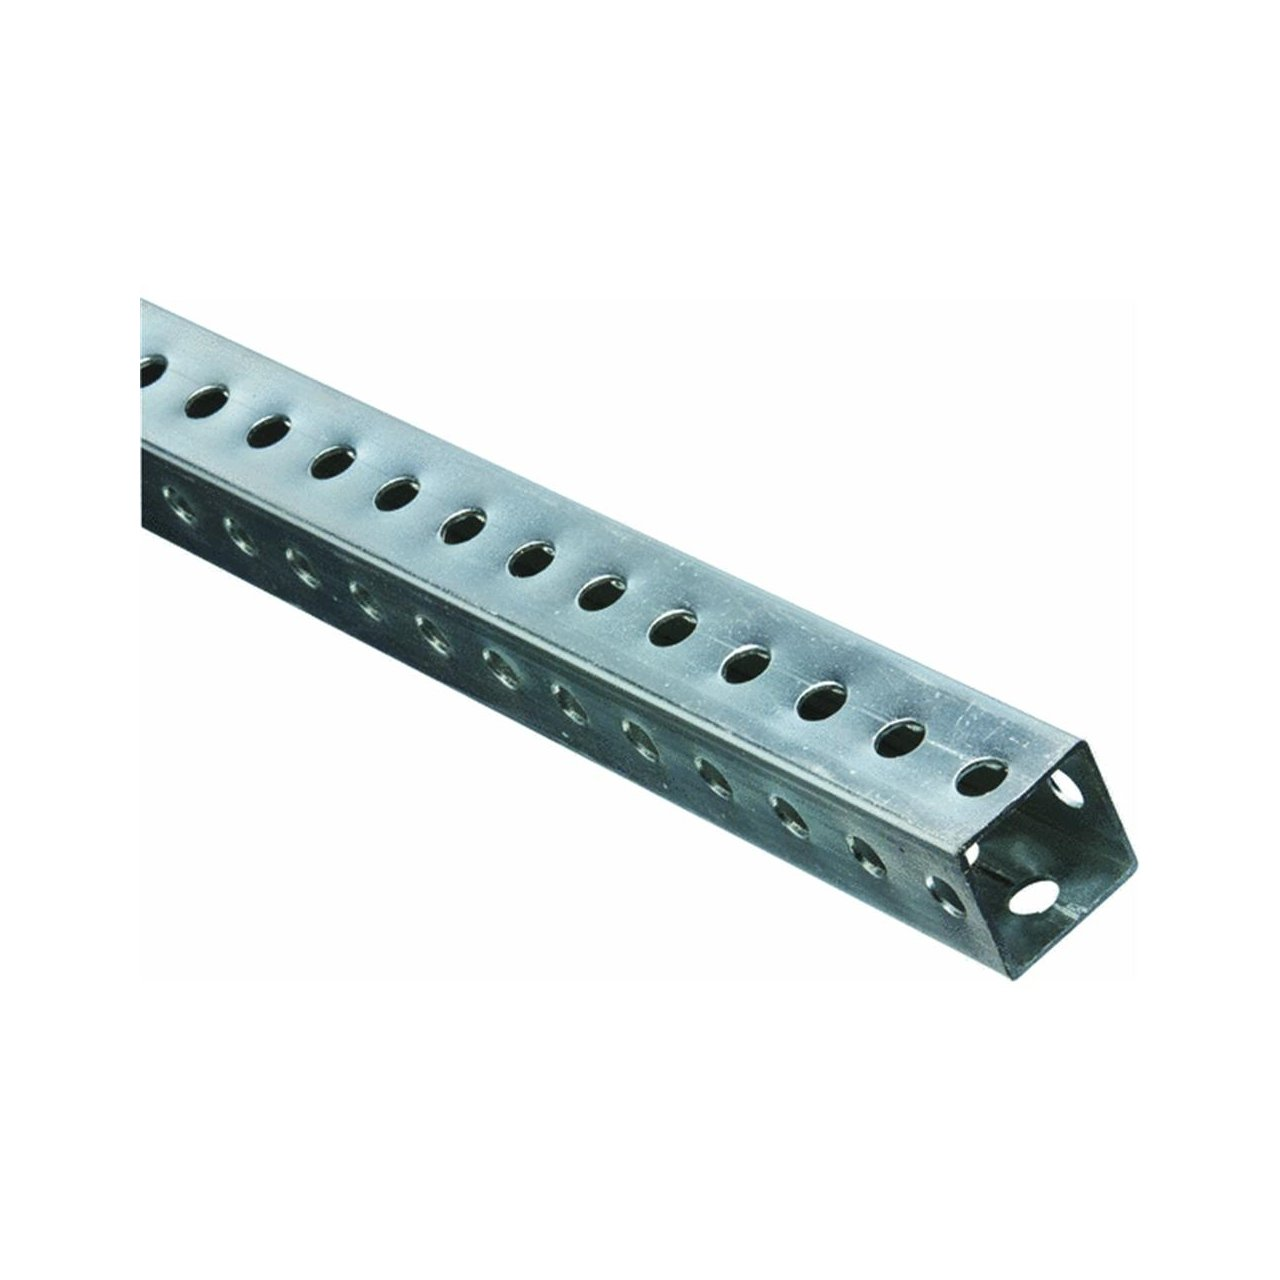 1-1//2X3 1-1//2X3/' Stanley N341-271 Slotted Square Tubing